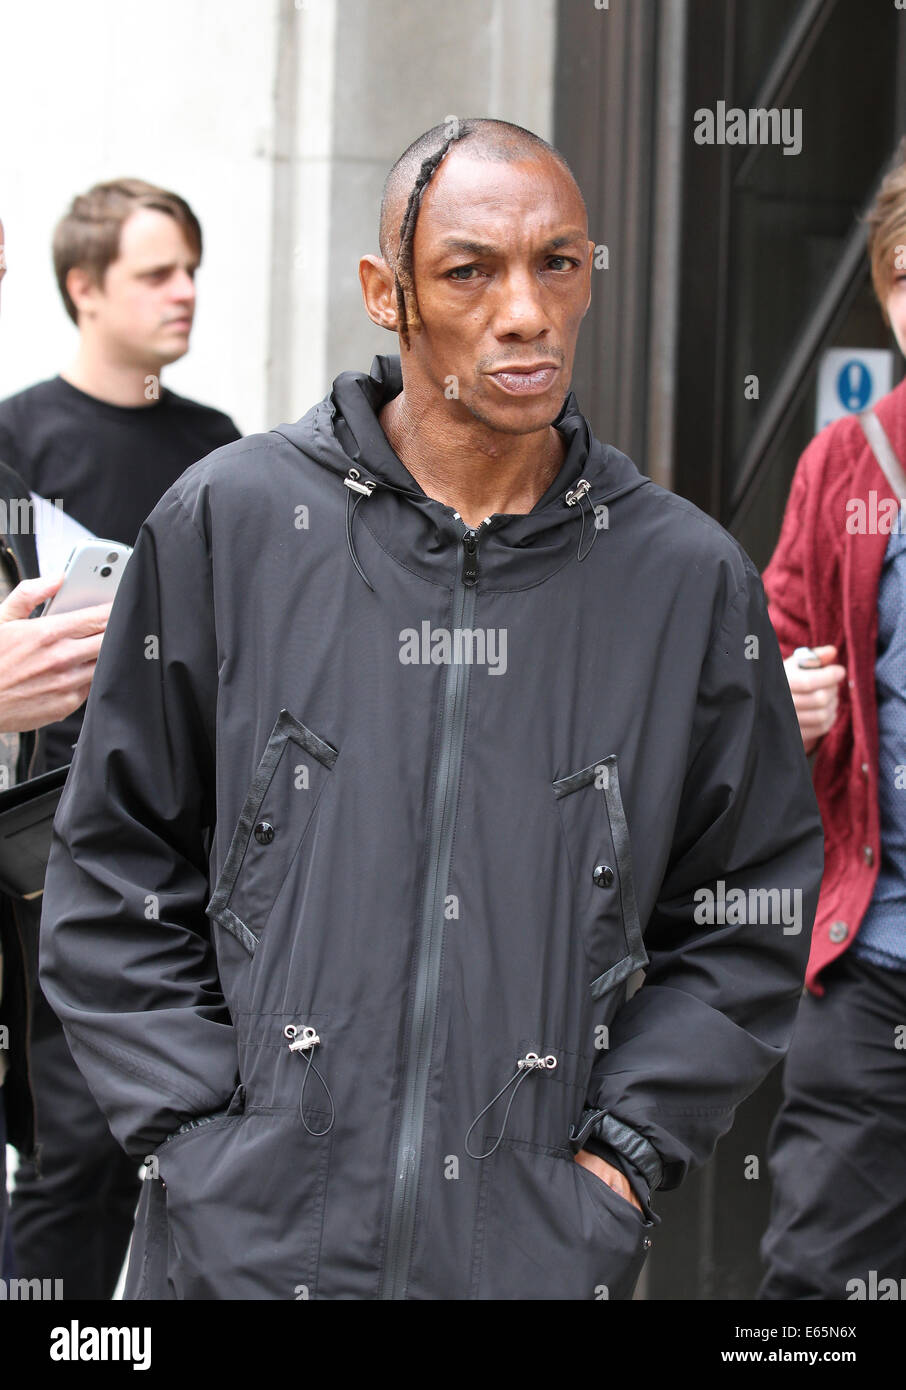 London, UK, 15th August 2014. Tricky seen at the BBC studios in London, UK - Stock Image